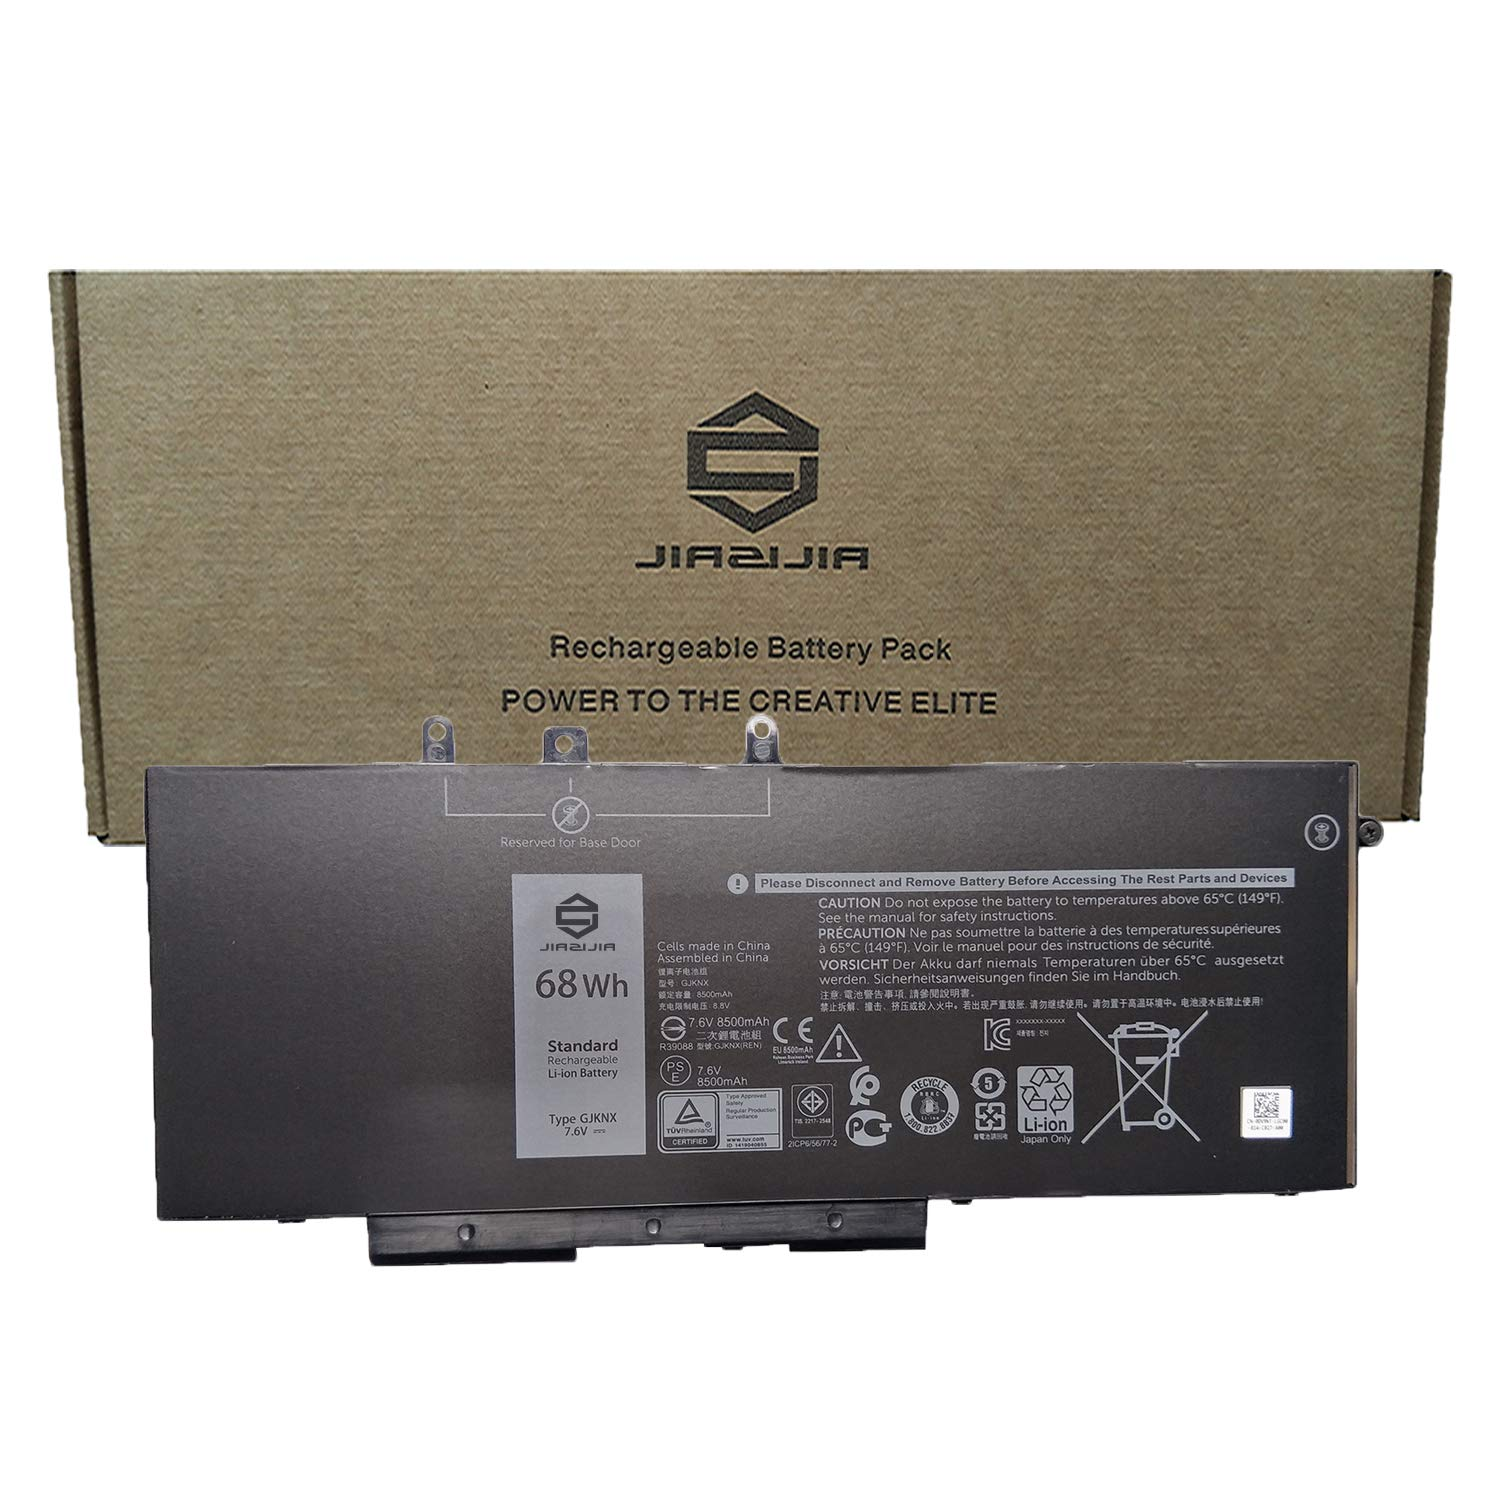 JIAZIJIA GJKNX Laptop Battery Replacement for Dell Latitude 14 5480 E5480 15 5580 E5580 14 5490 E5490 15 5590 E5590 Precision 3520 3530 Series 93FTF 3DDDG GD1JP DY9NT 5YHR4 7.6V 68Wh 8500mAh by JIAZIJIA (Image #1)